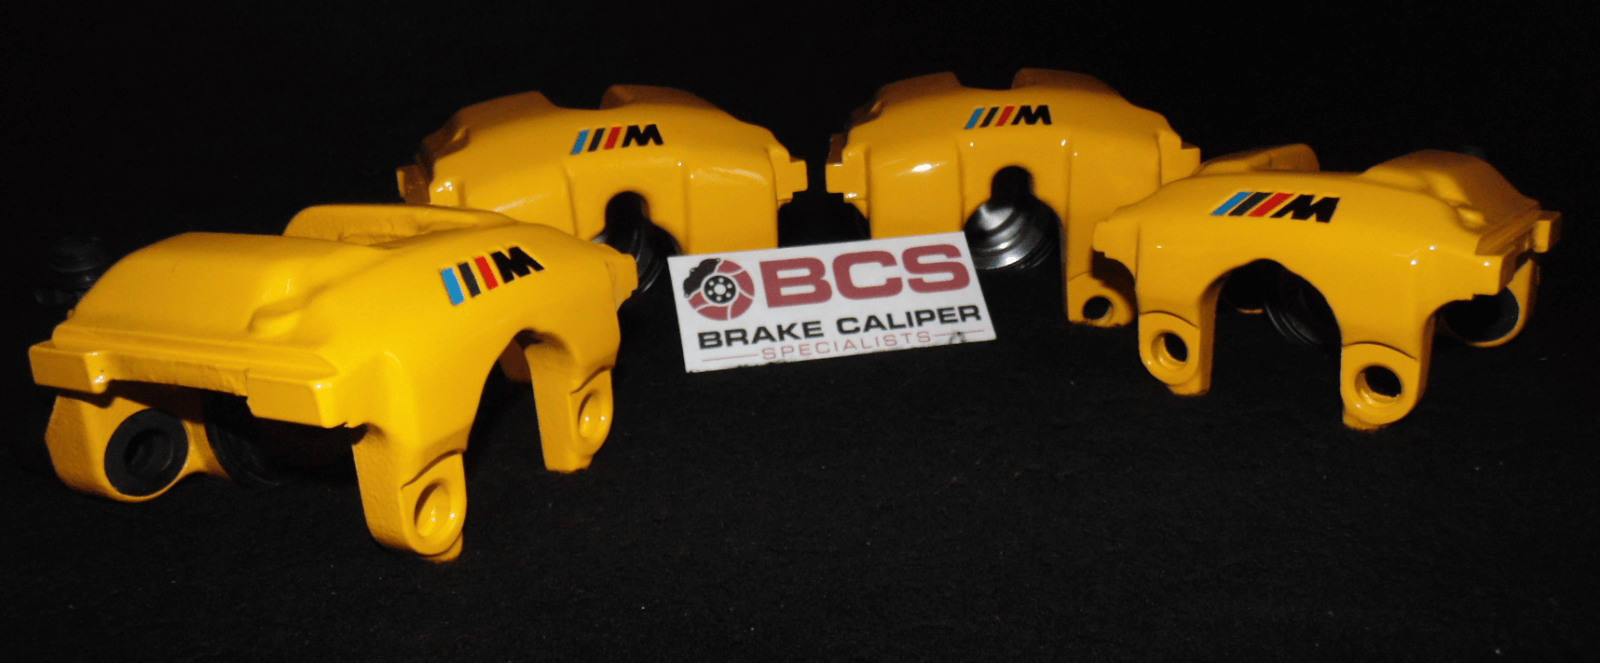 brake calipers painted in yellow with logo's